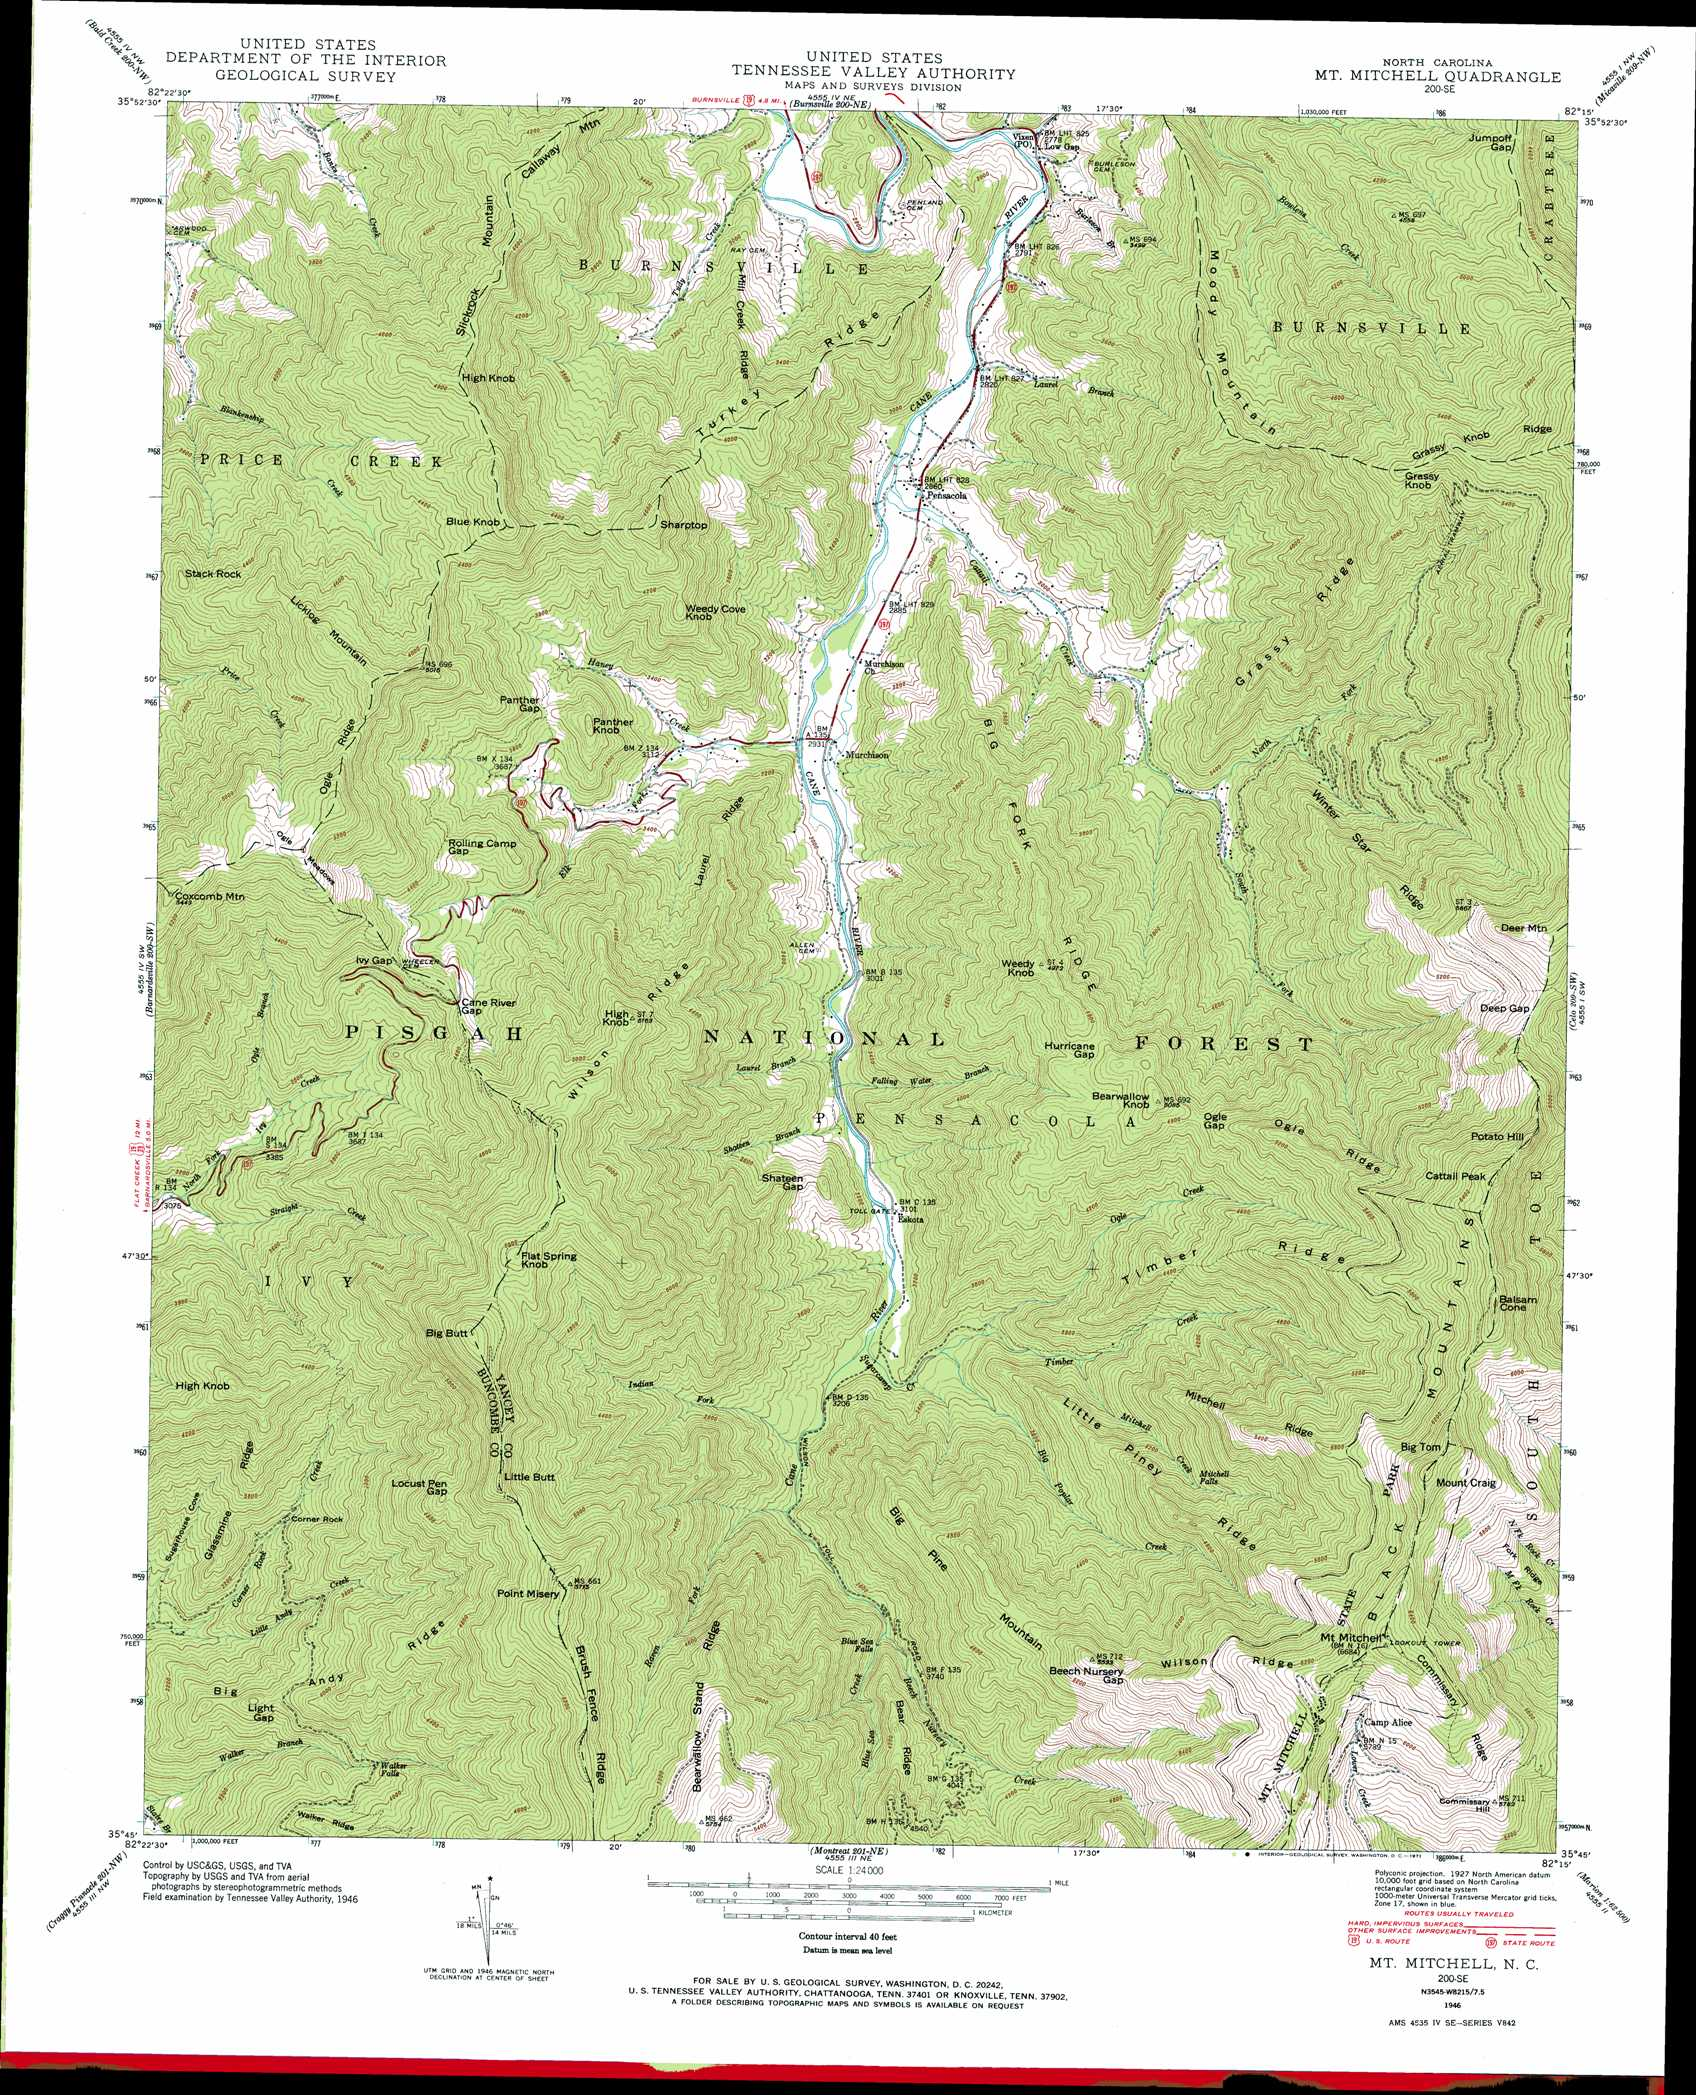 Mount Mitchell topographic map, NC - USGS Topo Quad 35082g3